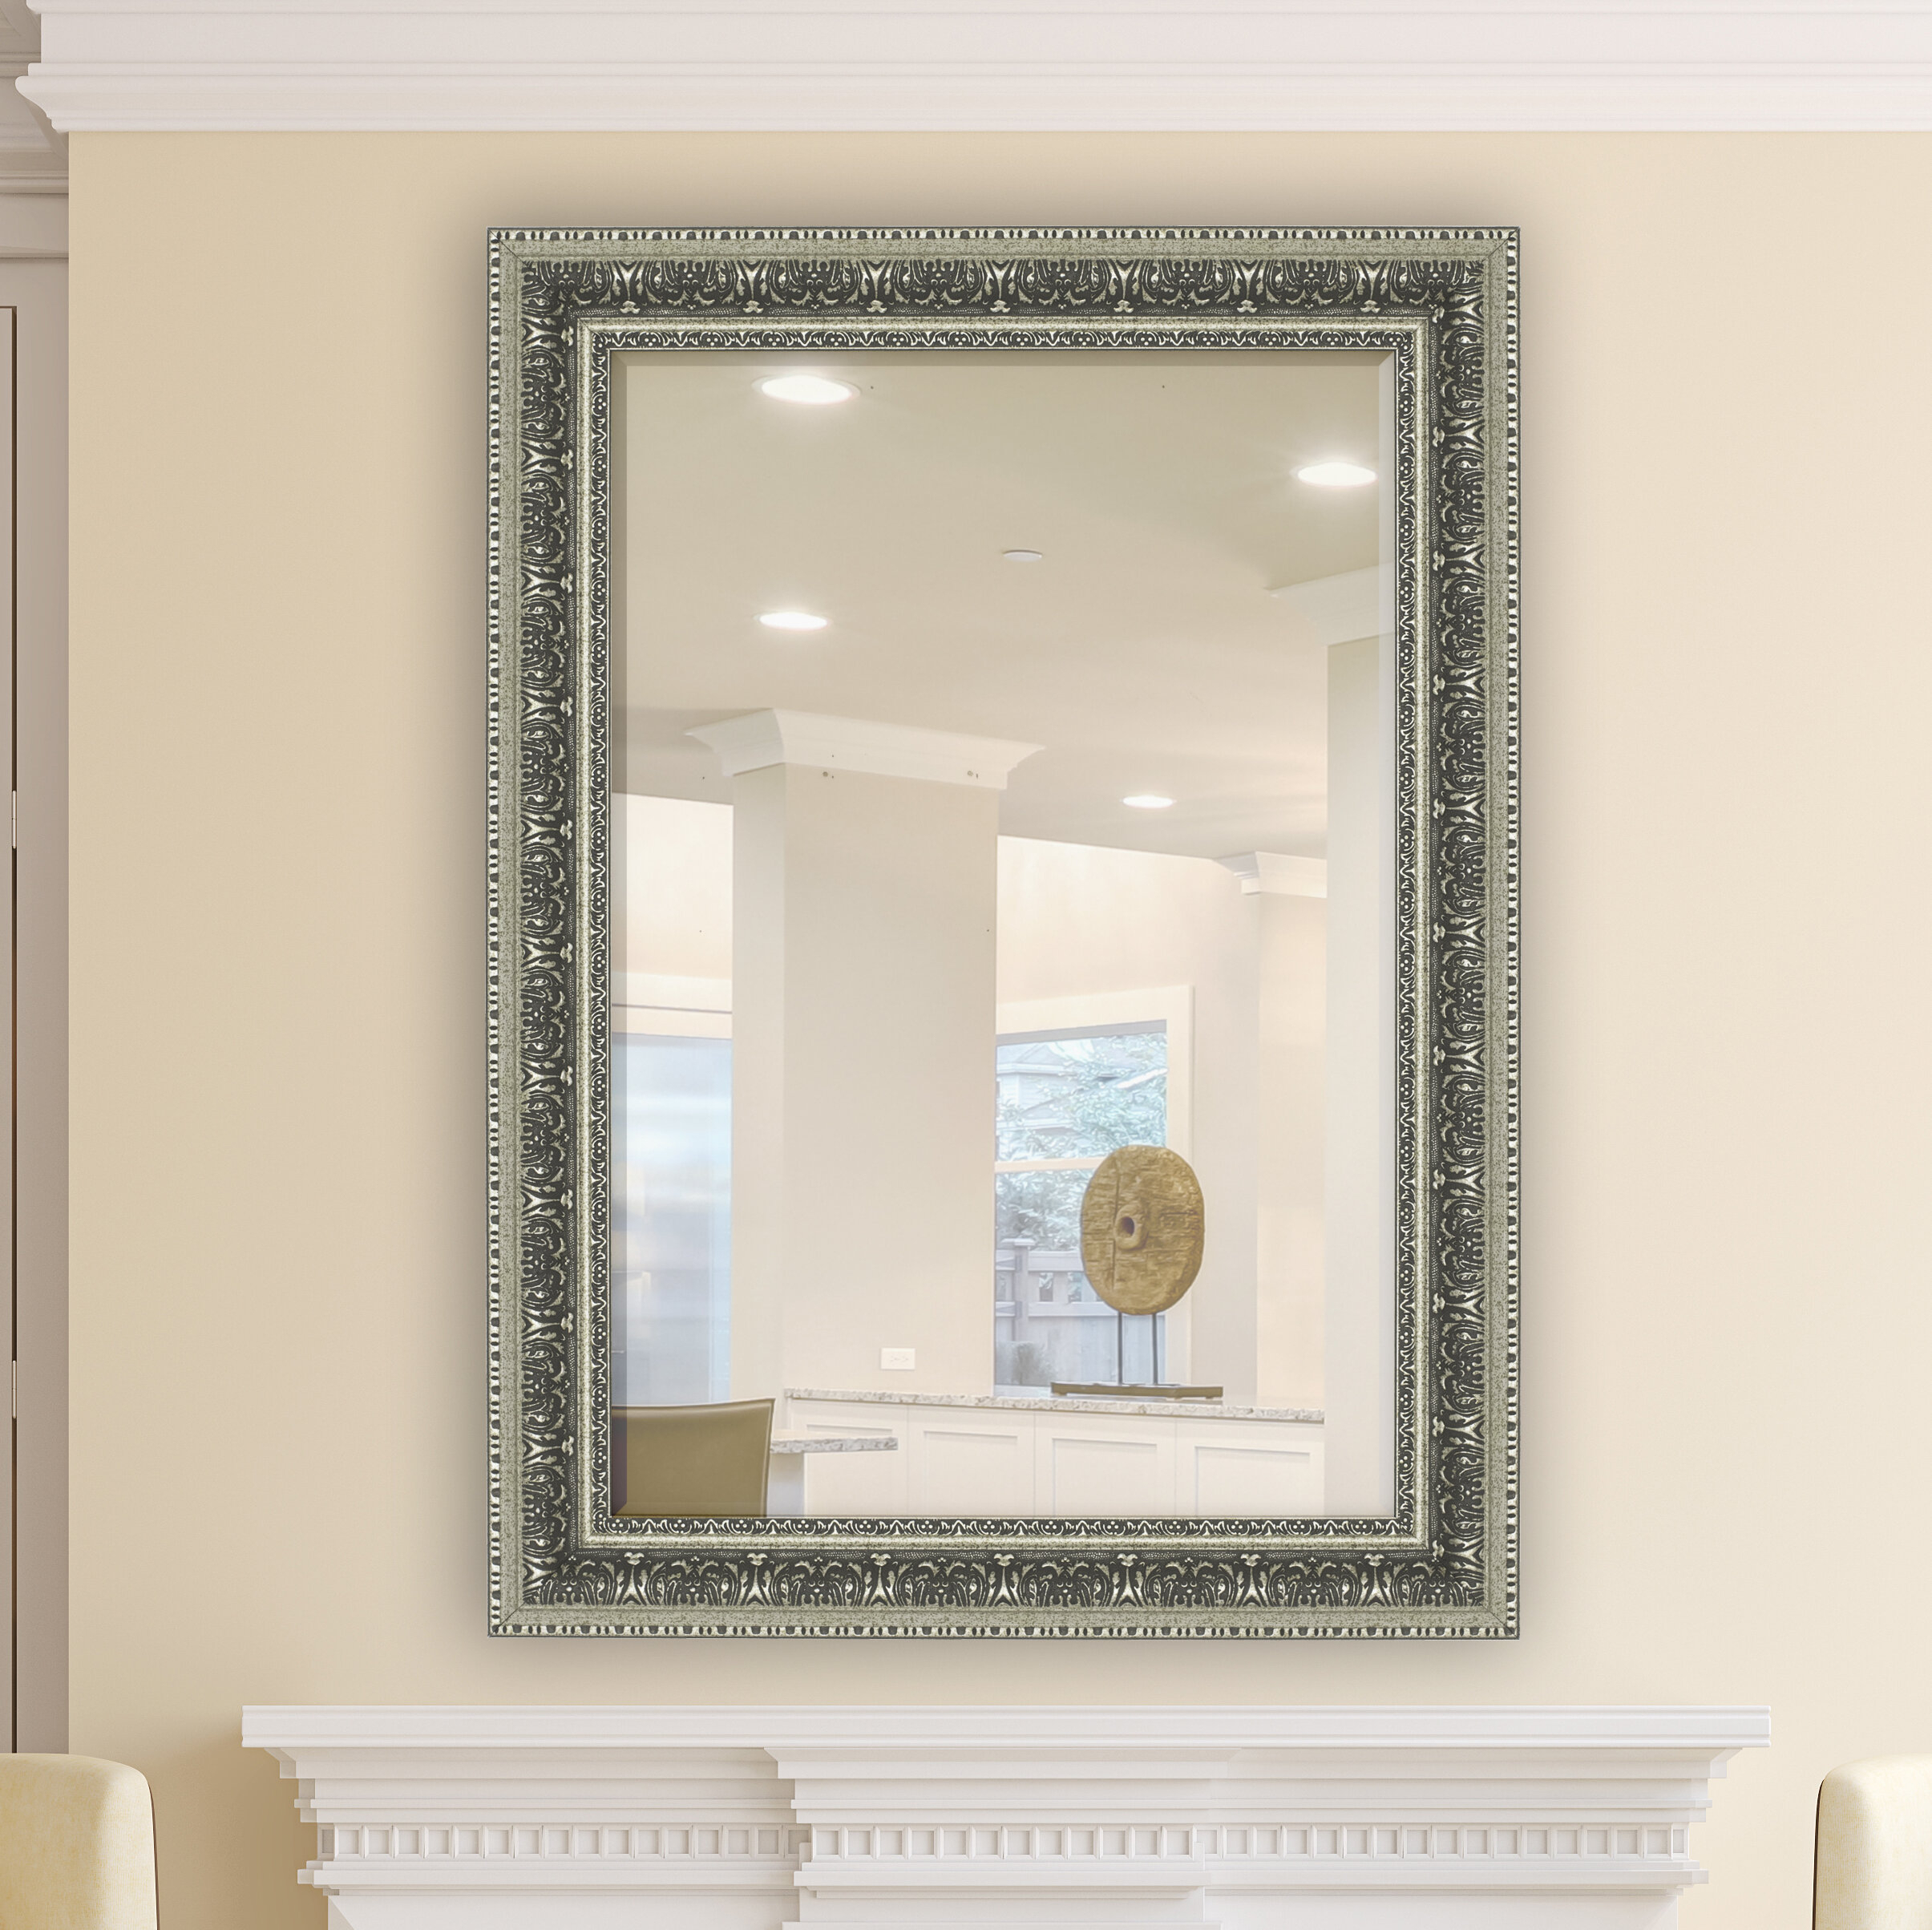 Elegant Wall Mirror | Wayfair With Phineas Wall Mirrors (Image 4 of 20)